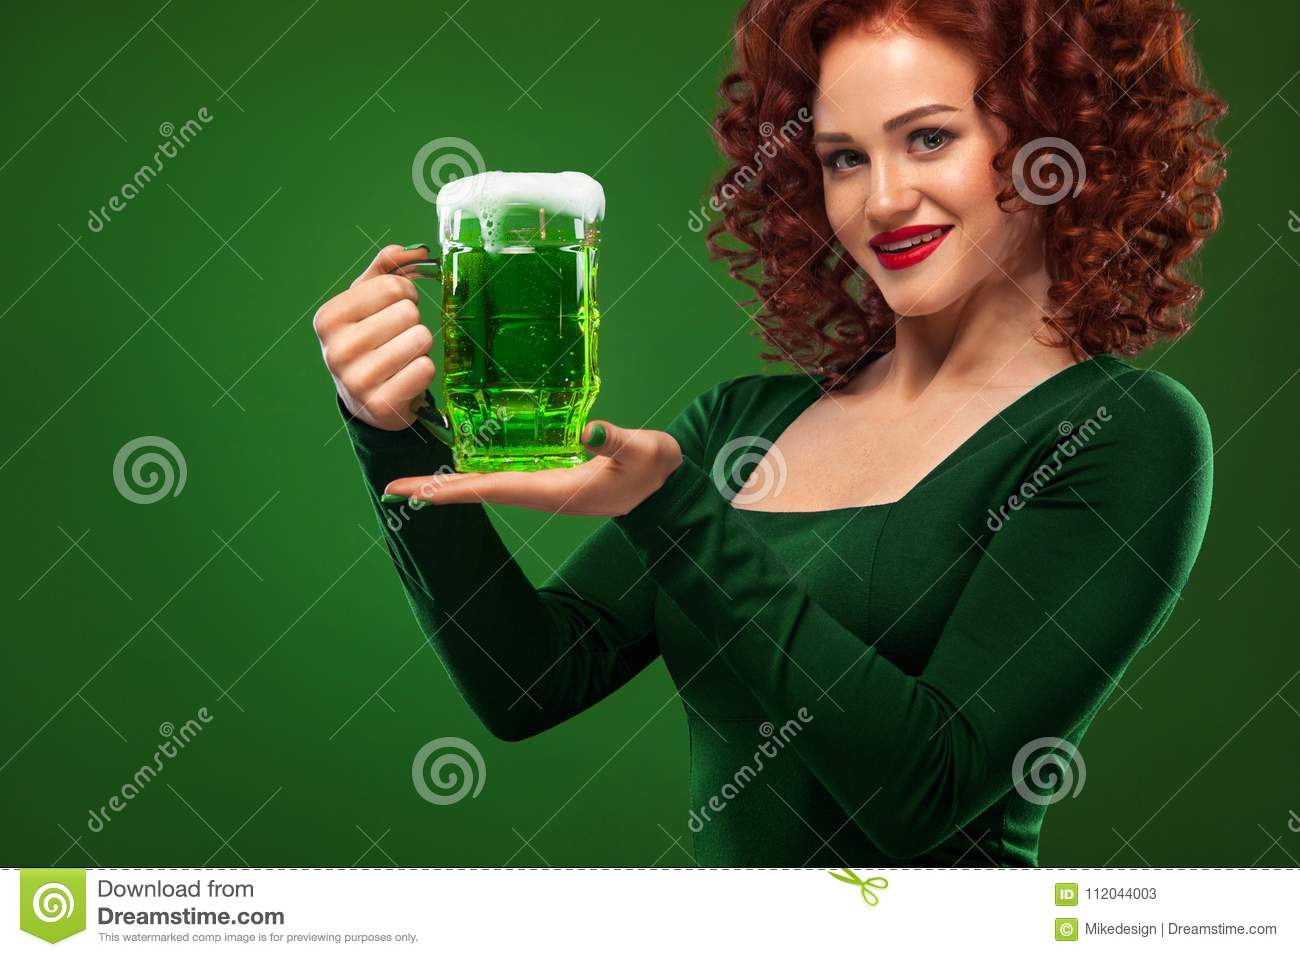 St Patricks Day. Young and redhead Octoberfest waitress, wearing a dress, serving big beer mugs on green background